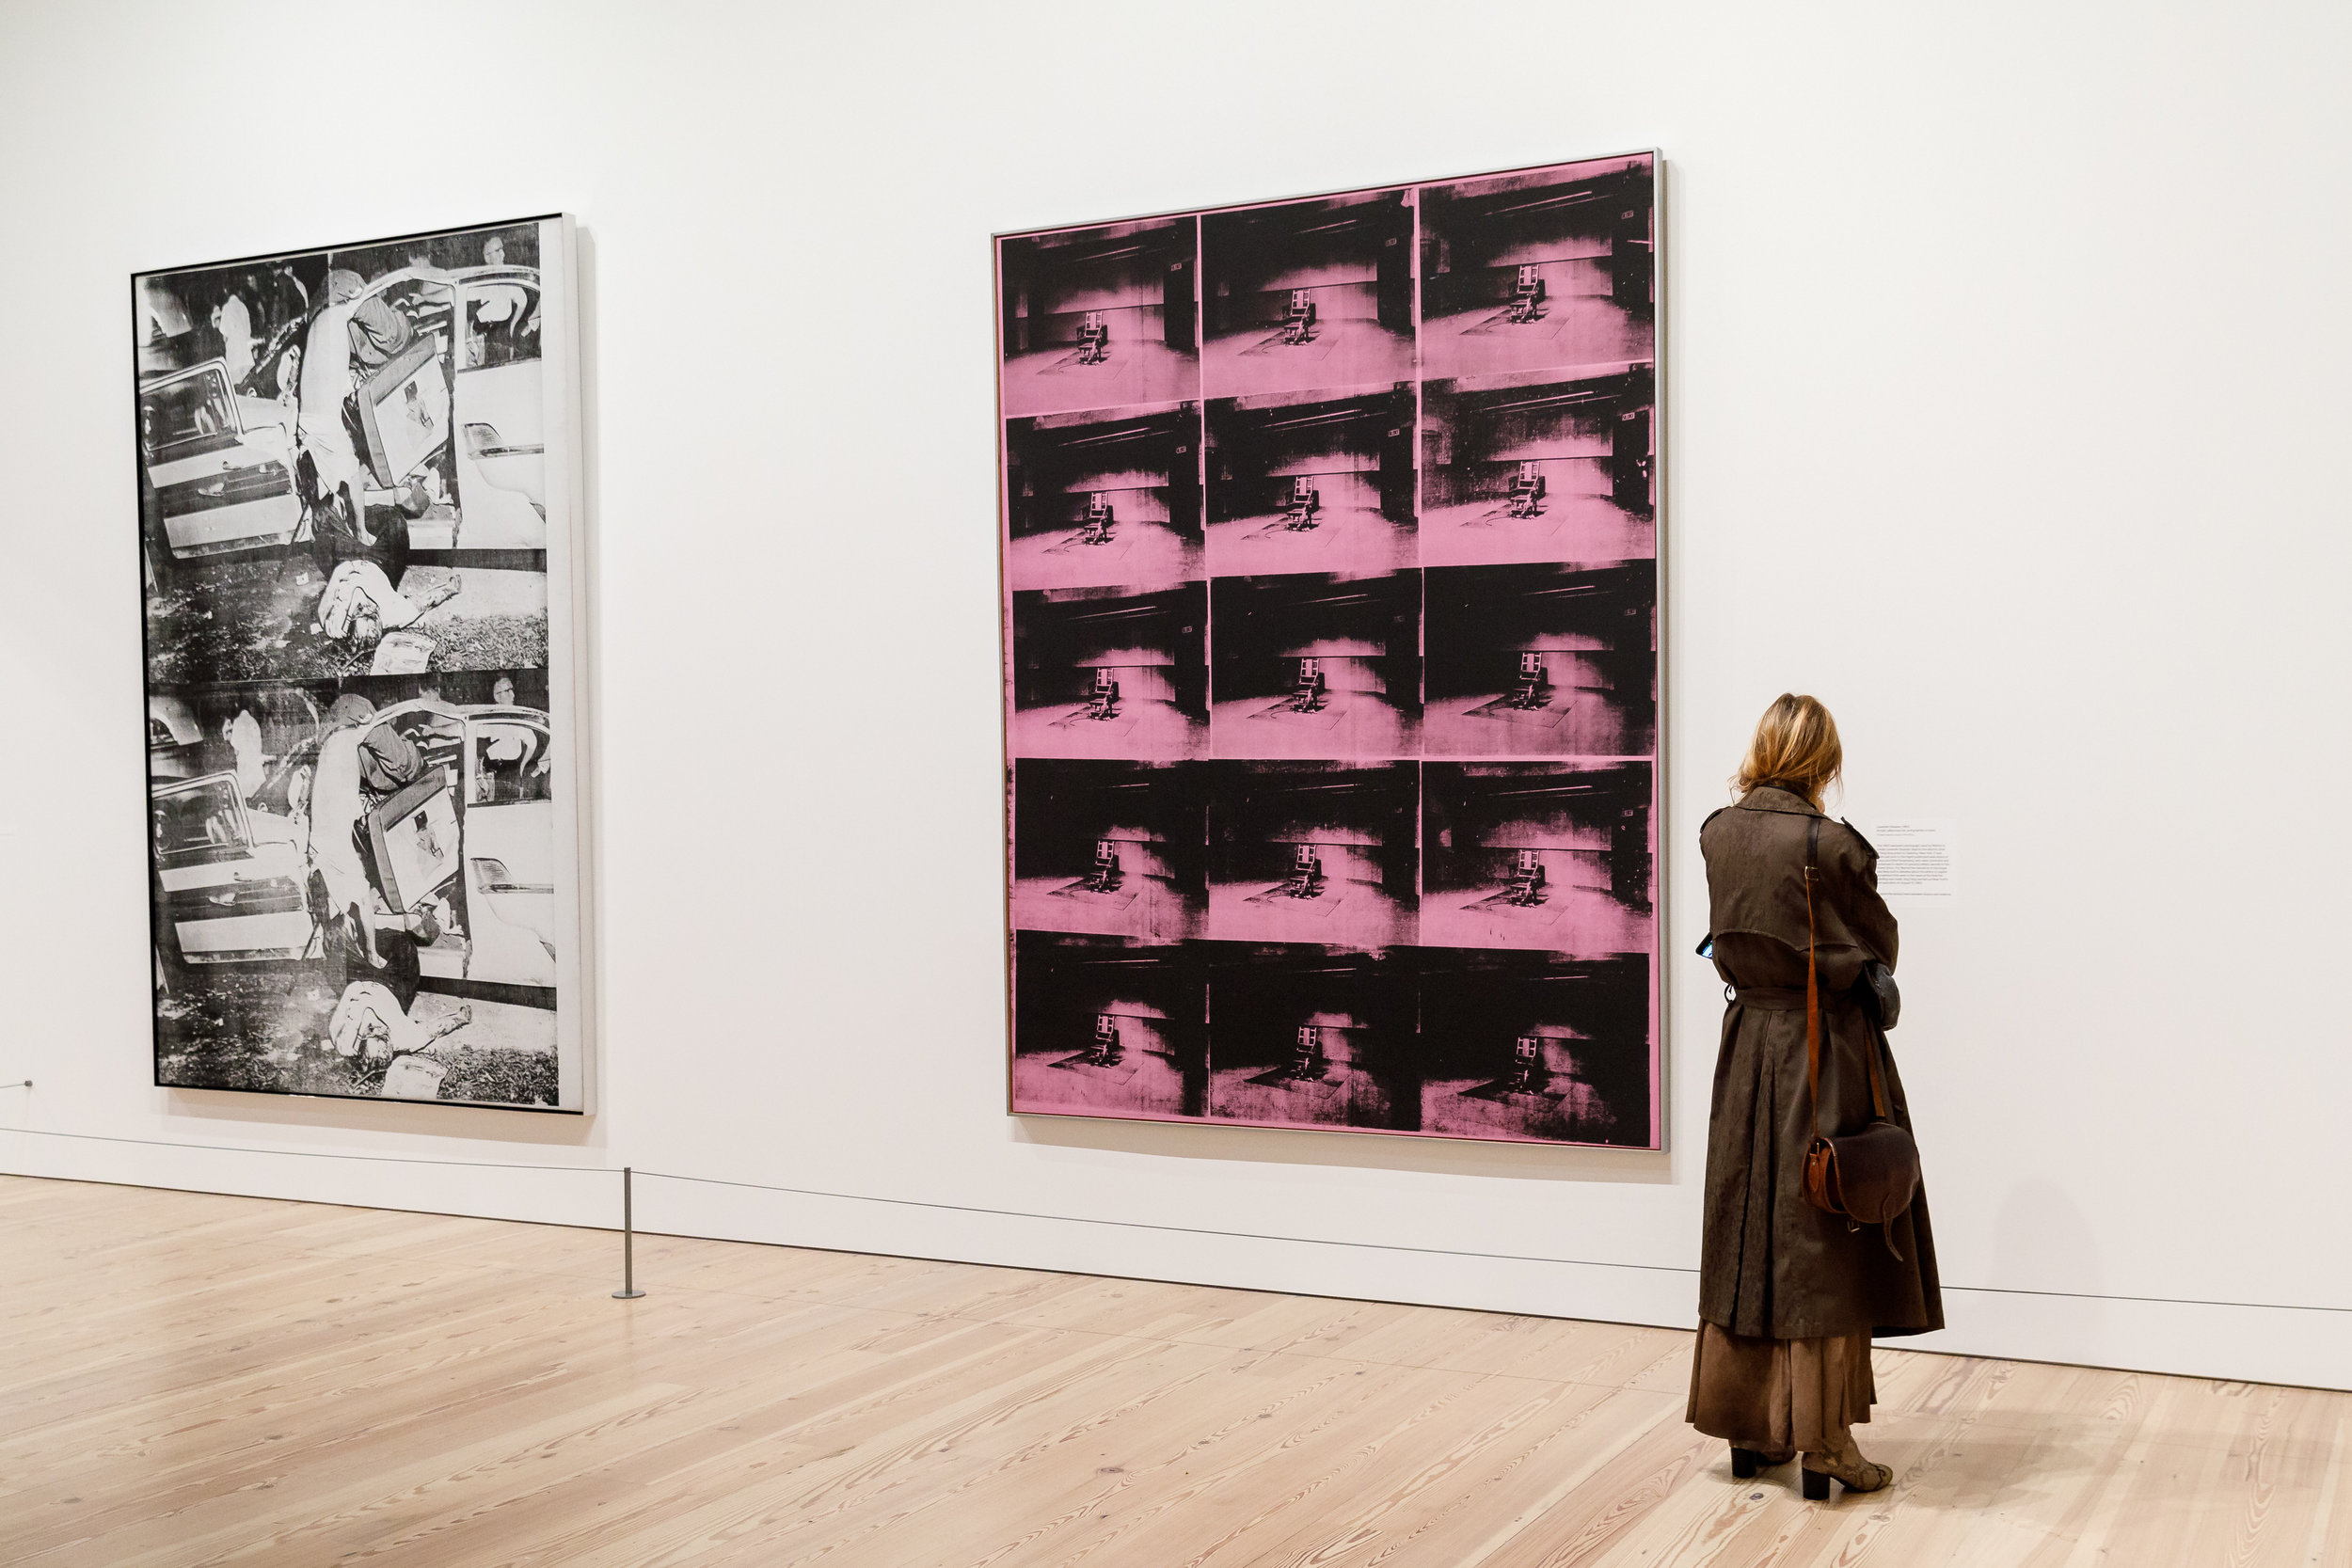 """Works from Warhol's """"Death and Disaster"""" series. Image courtesy of ©MatthewCarasella.com 2015/ All Rights Reserved"""